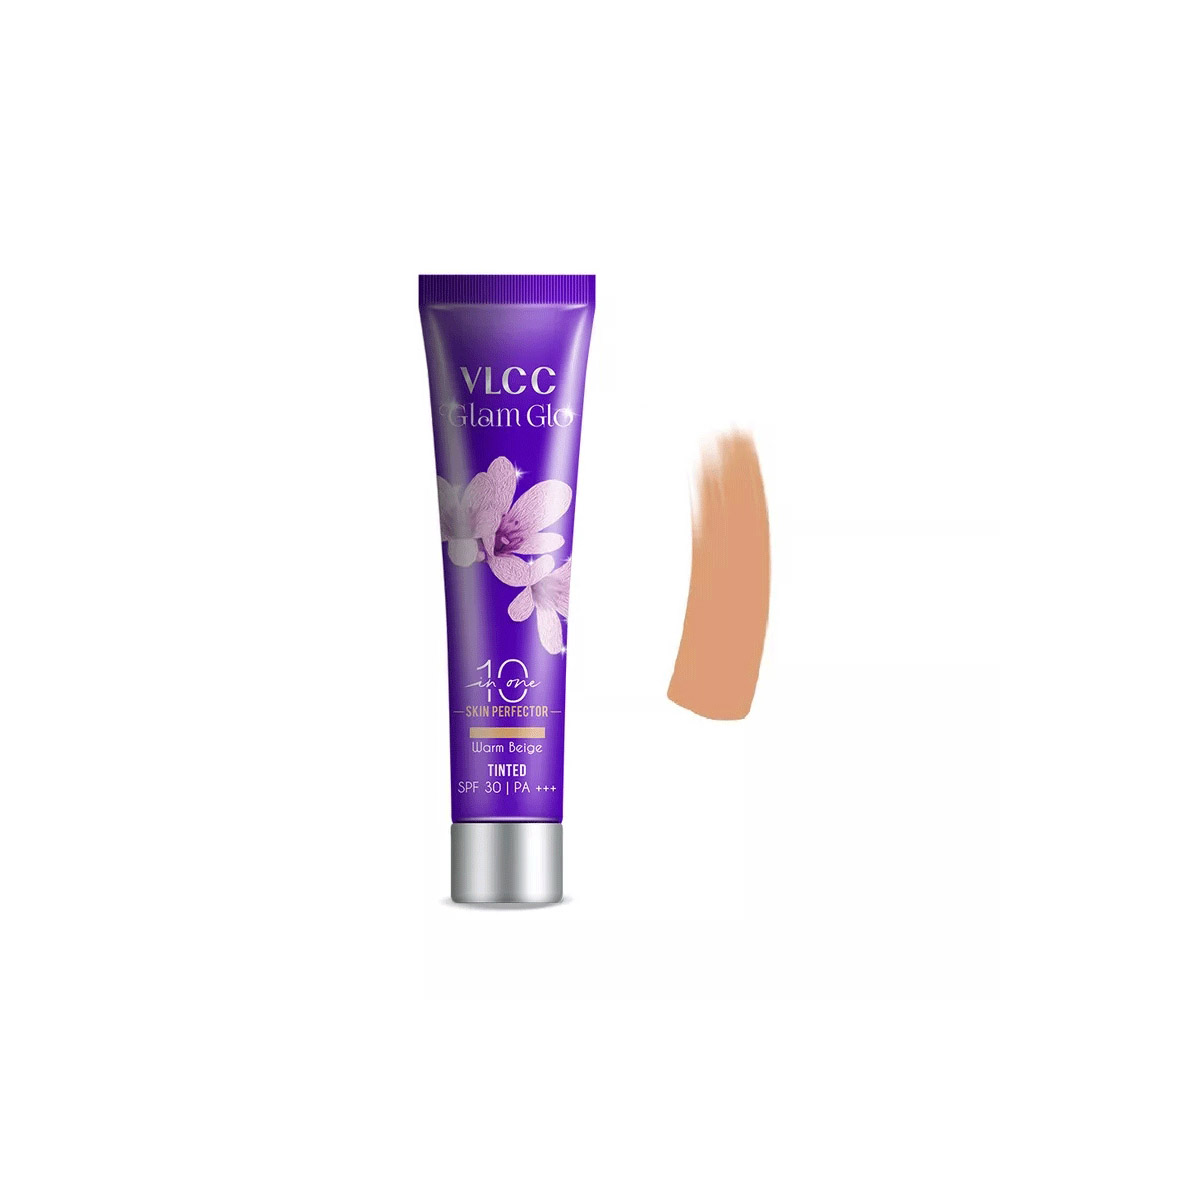 VLCC Glam Glo 10 in 1 Skin Perfector - Warm Beige SPF 30 PA+++ (30gm)